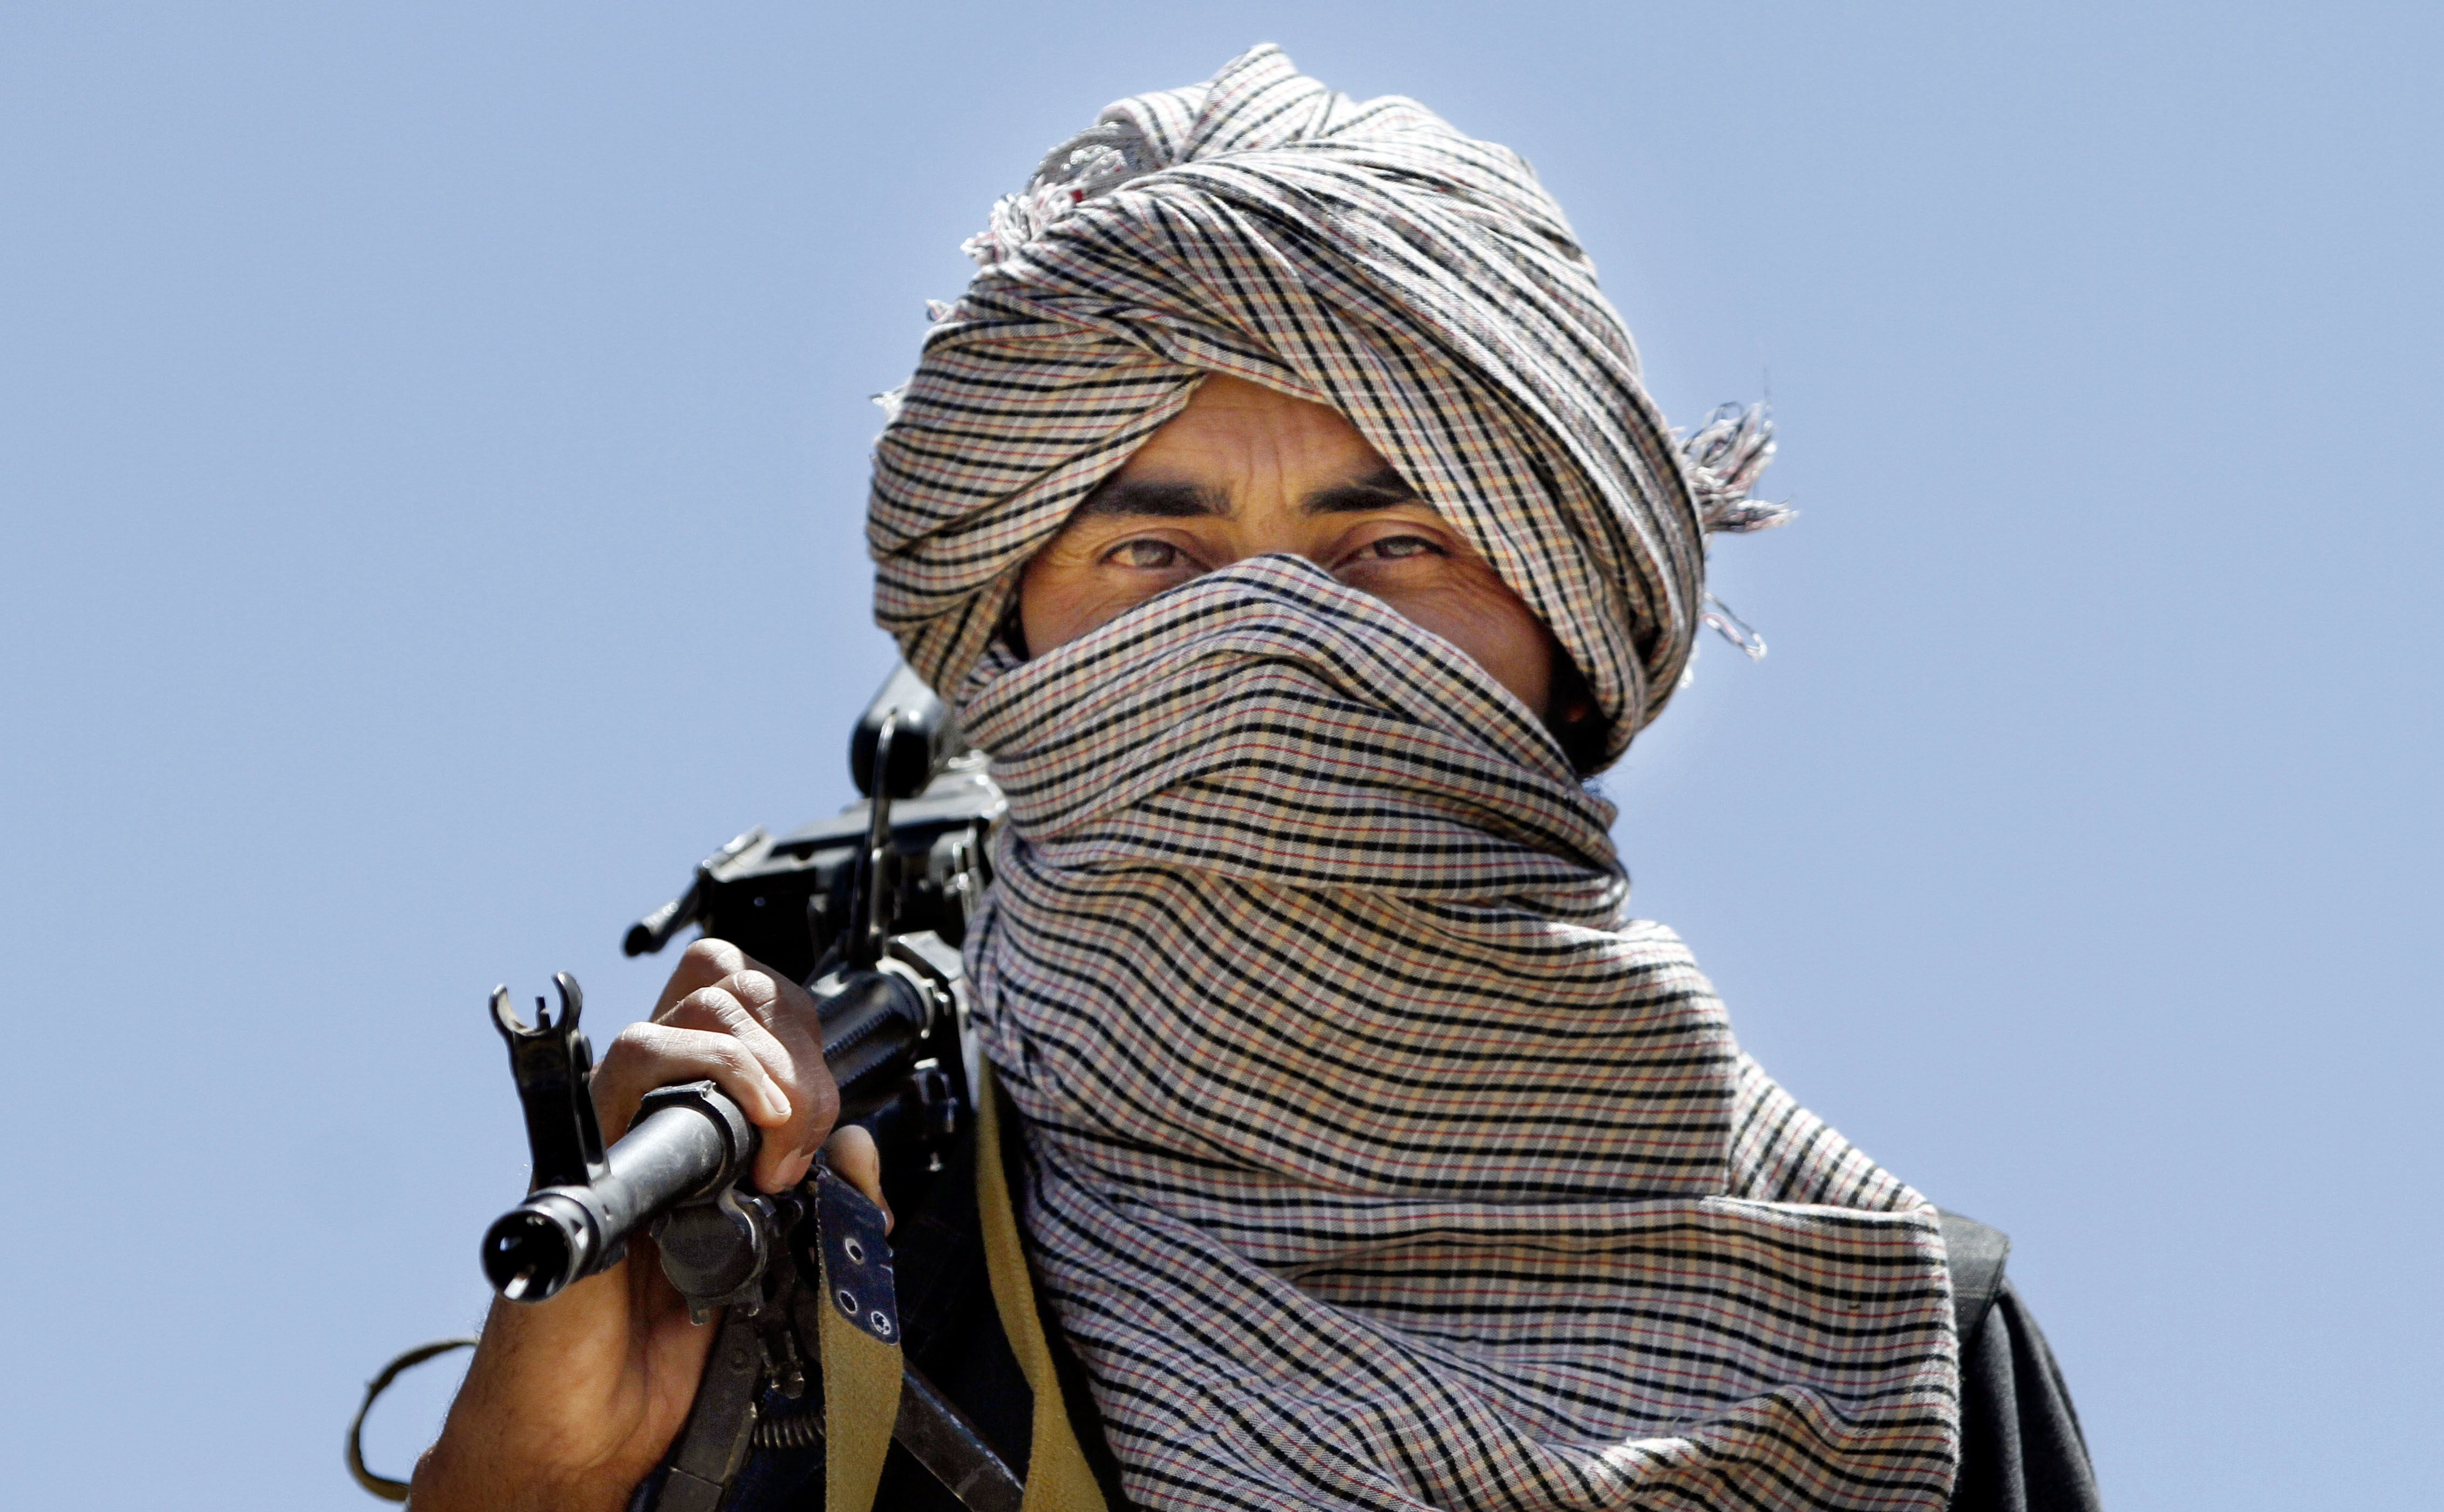 The Taliban is considered a terrorist group by Russia. Source: AP